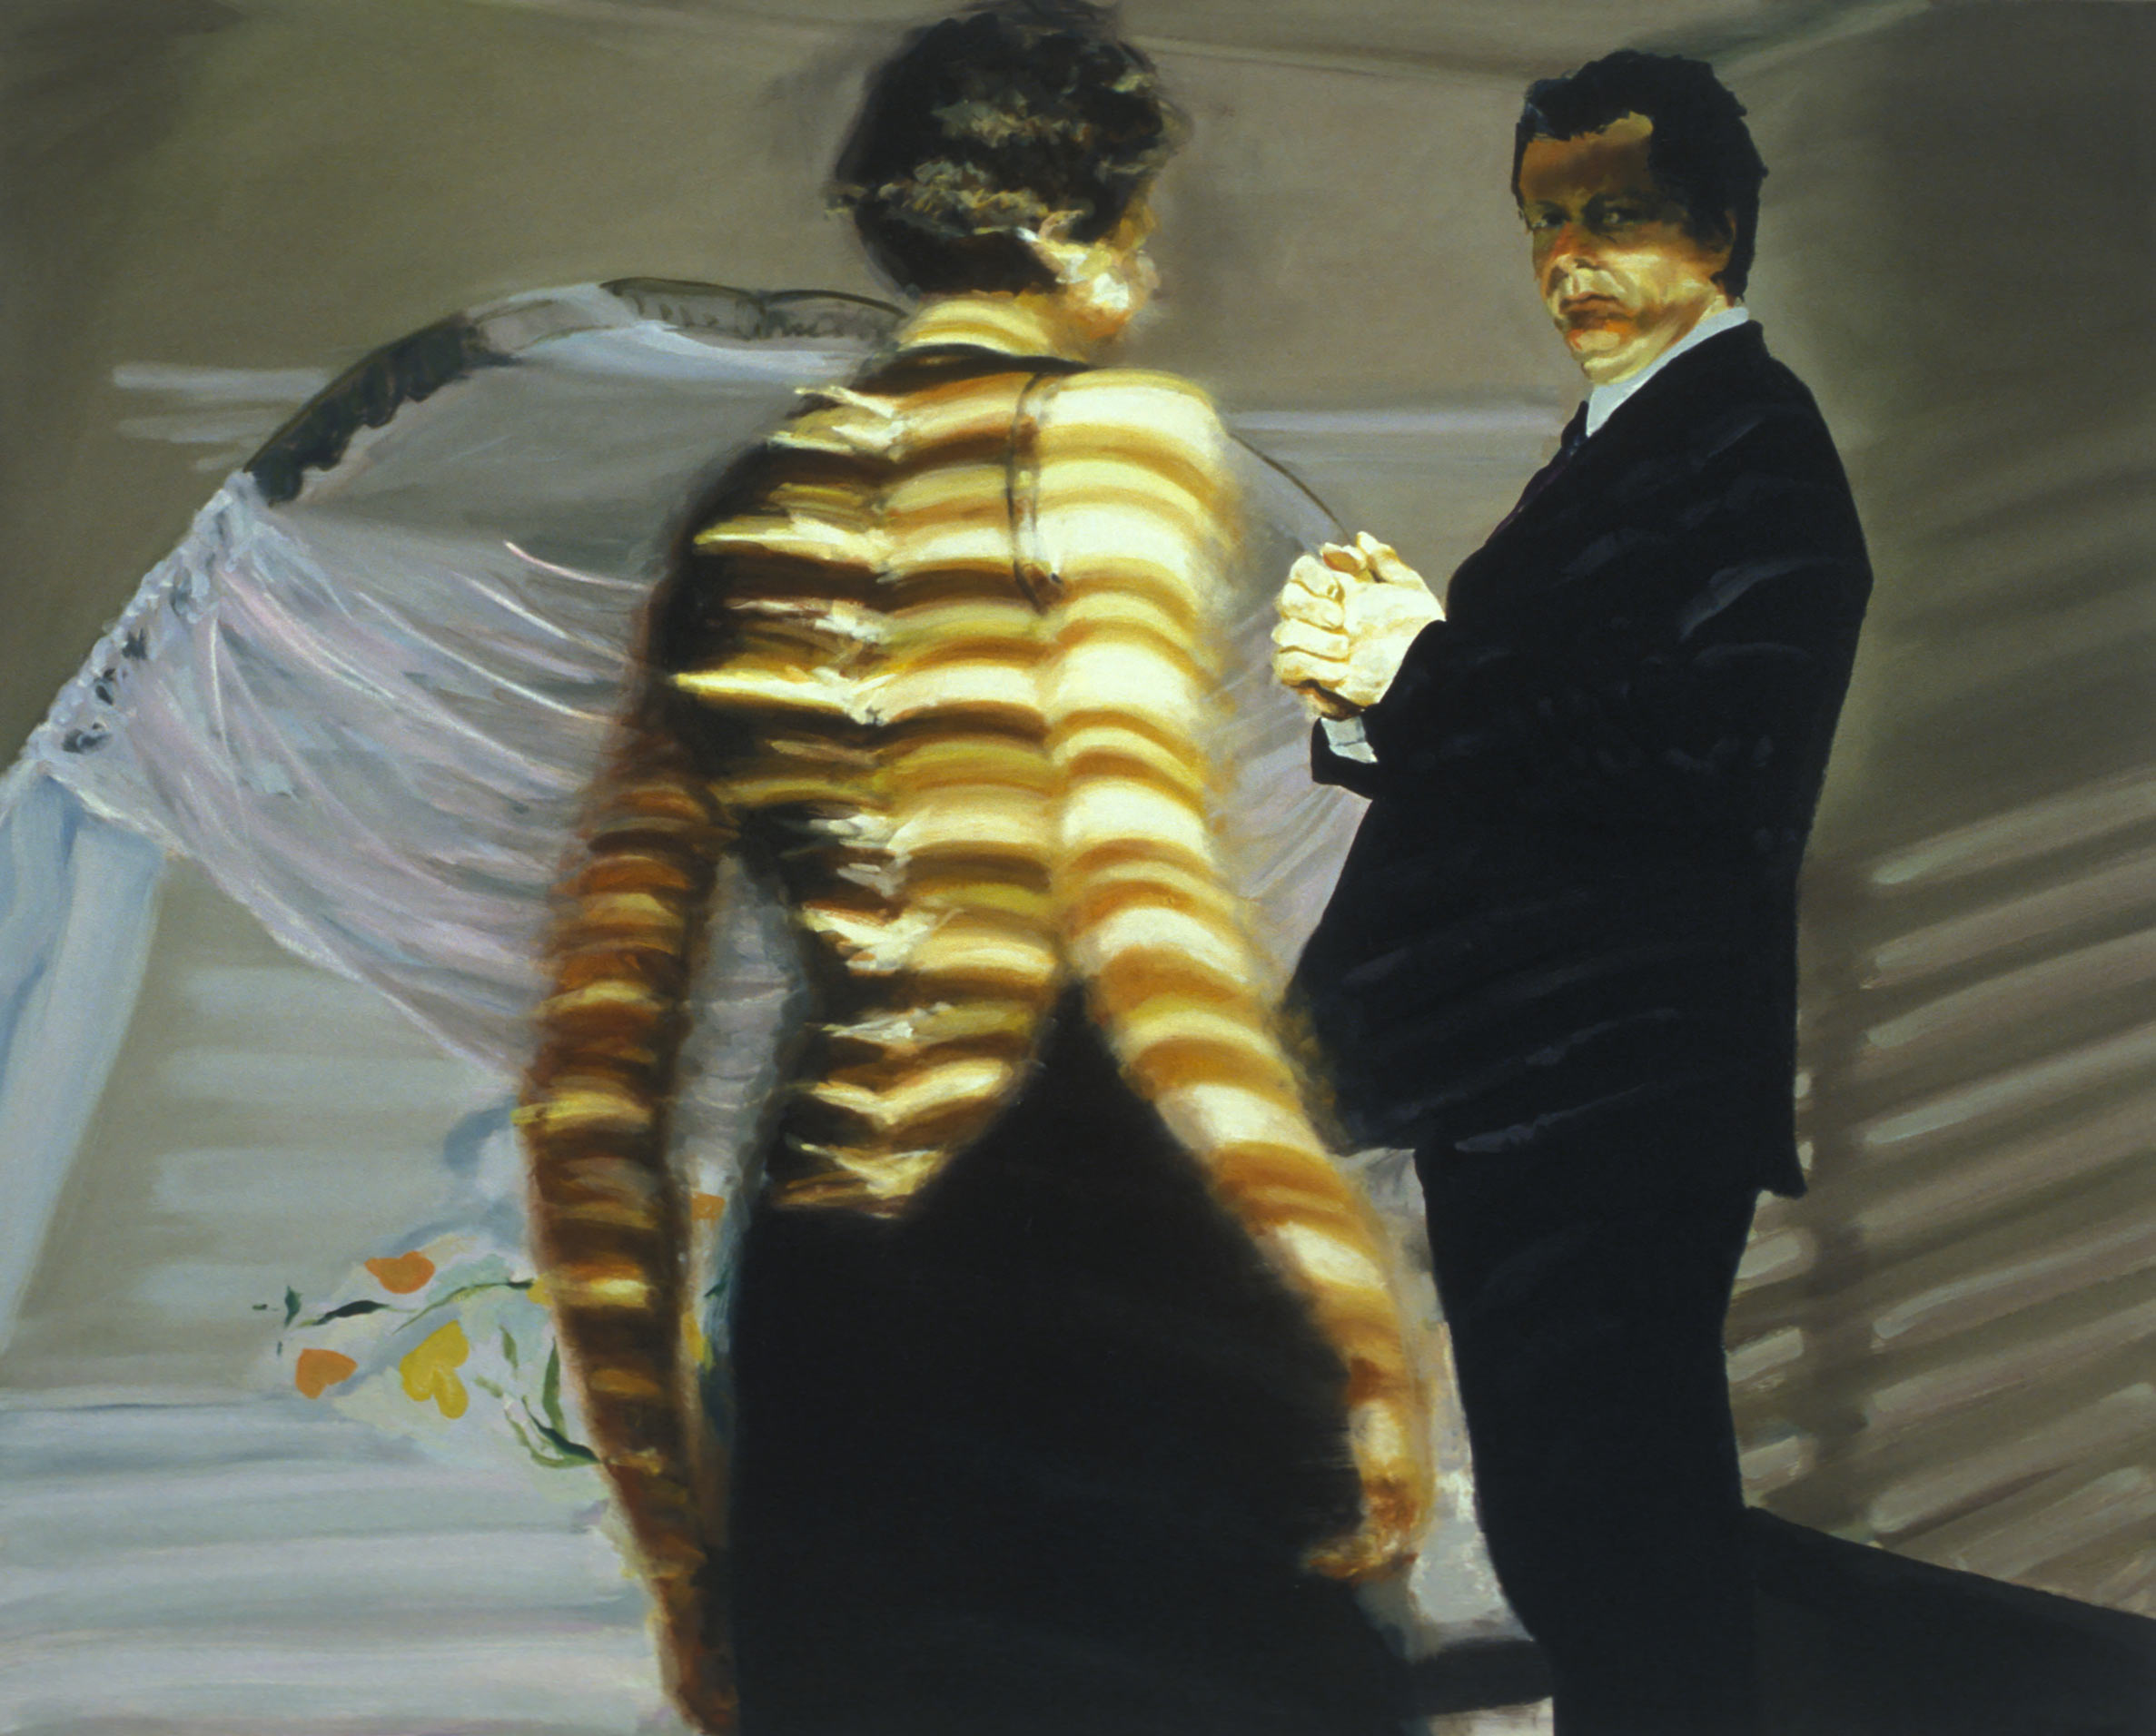 Bedroom, Scene #6, Surviving the Fall Meant Using You for Handholds, 2004.